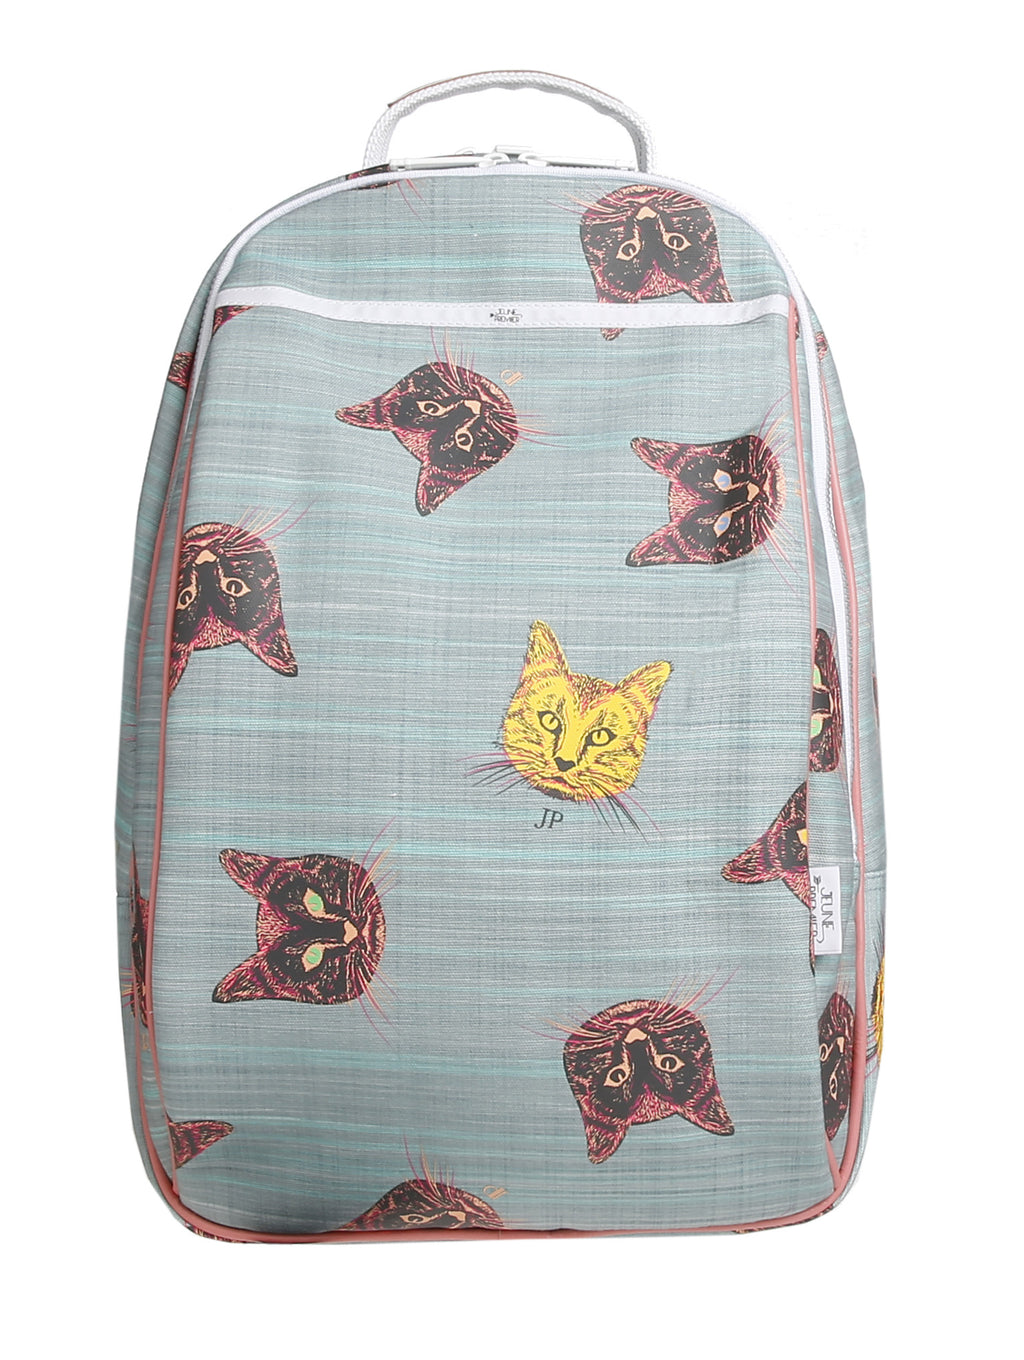 Backpack Kittens Design